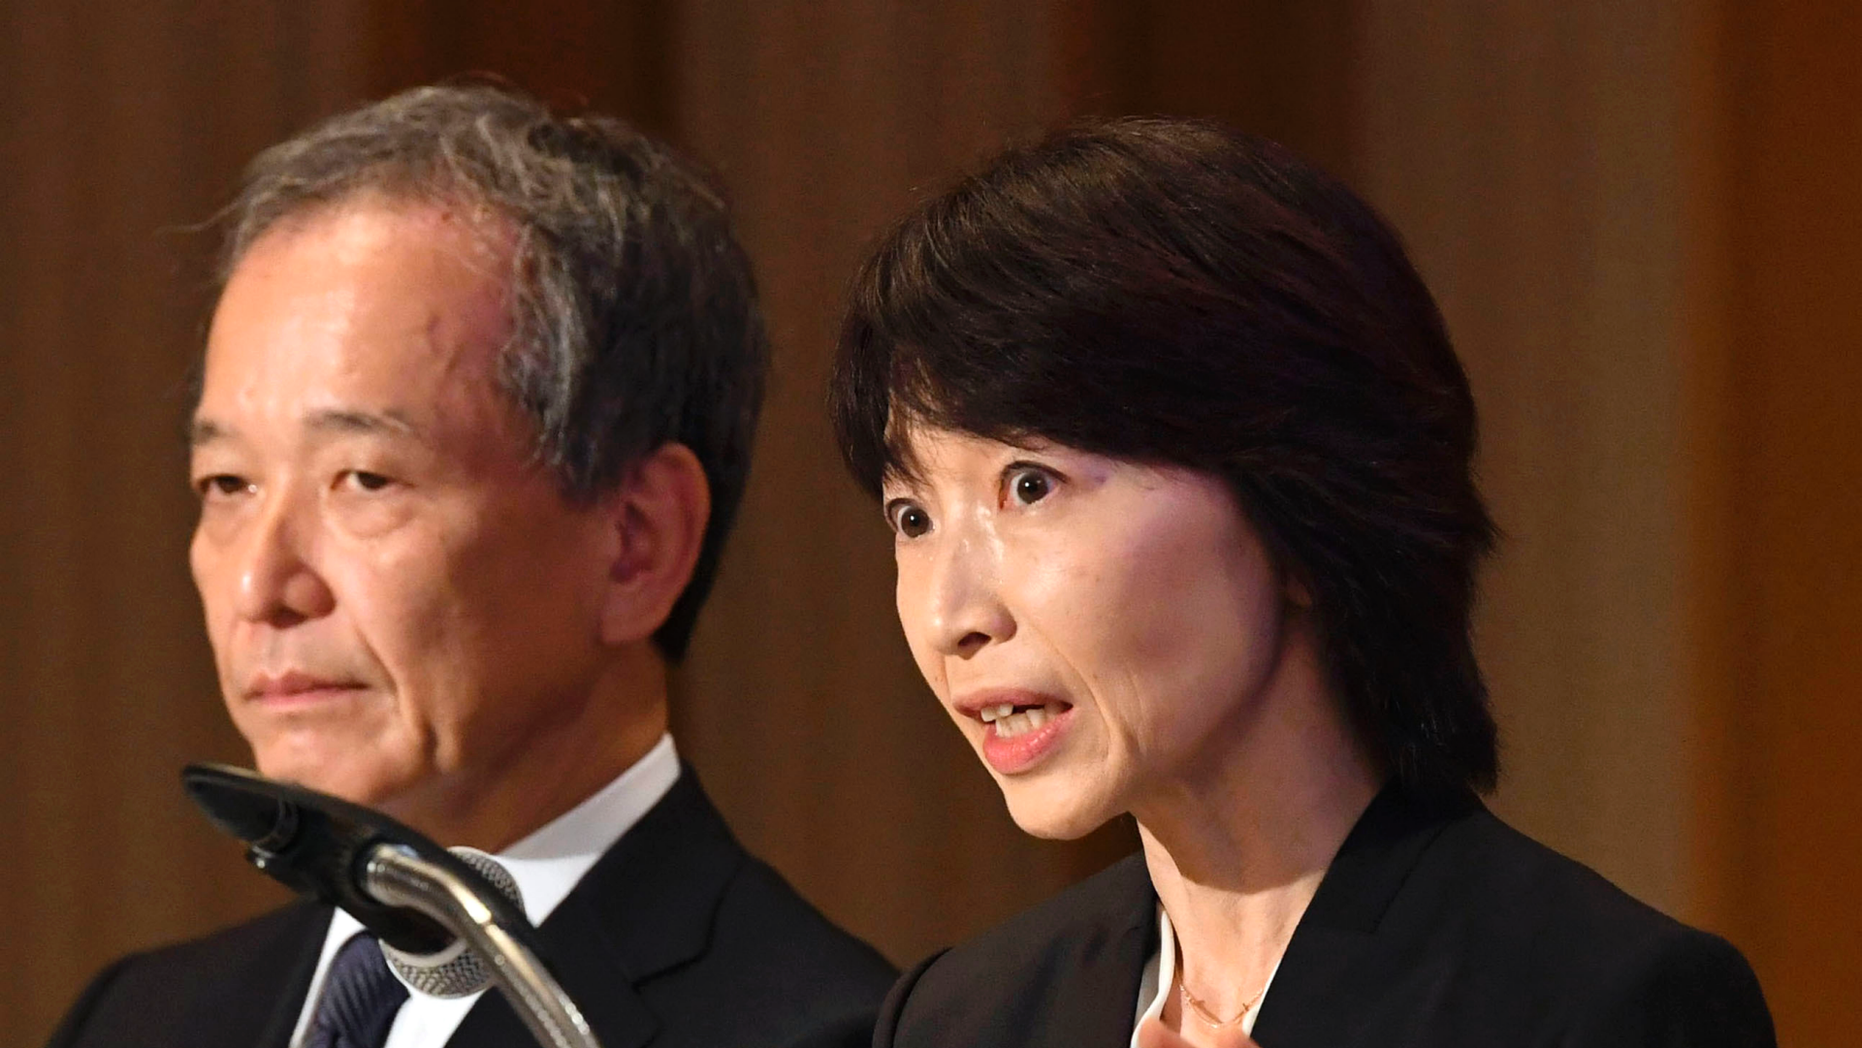 Tokyo Medical University President Yukiko Hayashi, right, speaks during a press conference in Tokyo, Wednesday, Nov. 7, 2018.  The Japanese medical university that has acknowledged systematically discriminating against female applicants has announced plans to accept more than 60 who had been unfairly rejected in the past two years.  The discriminatory policy at Tokyo Medical University surfaced earlier this year, triggering national outrage. The school acknowledged in August that it has been slashing female applicants' entrance exam scores for years to keep the female student population low, saying women tend to quit as doctors after starting families.(Kyodo News via AP)